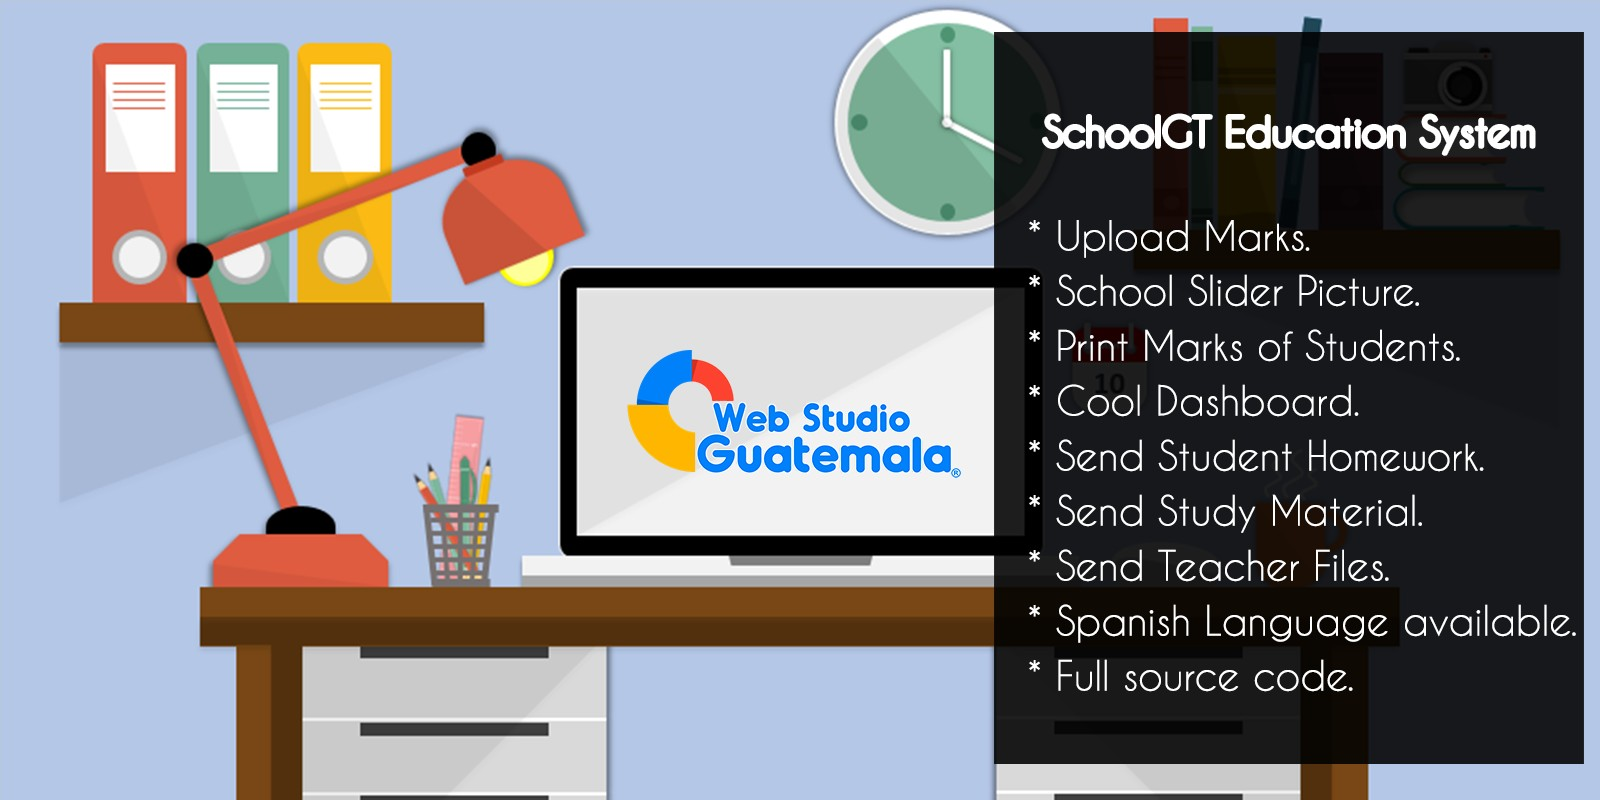 Schoolgt Education System Php Script Php Scripts Php Code